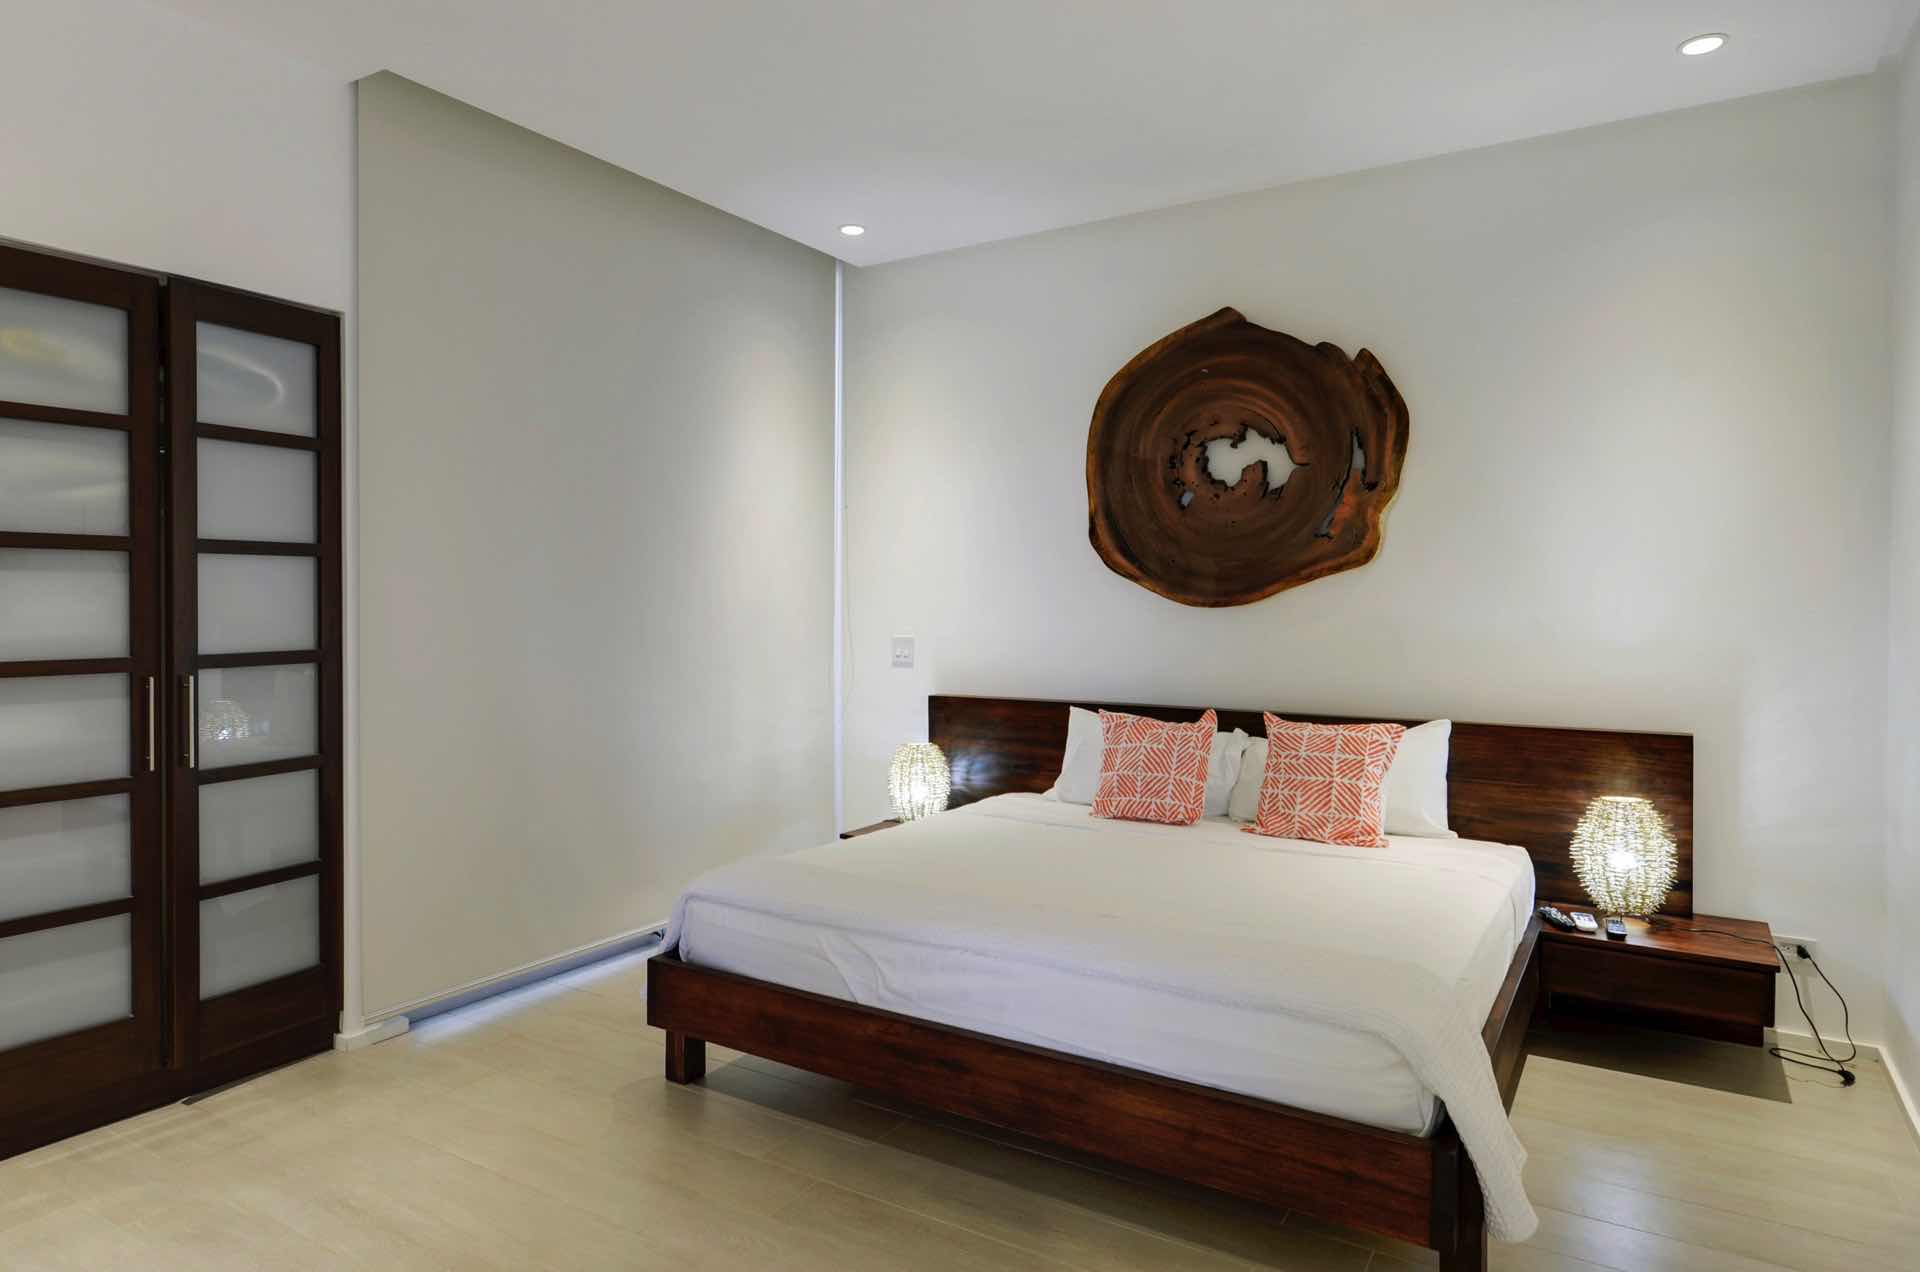 Guest bedroom with natural wood artwork